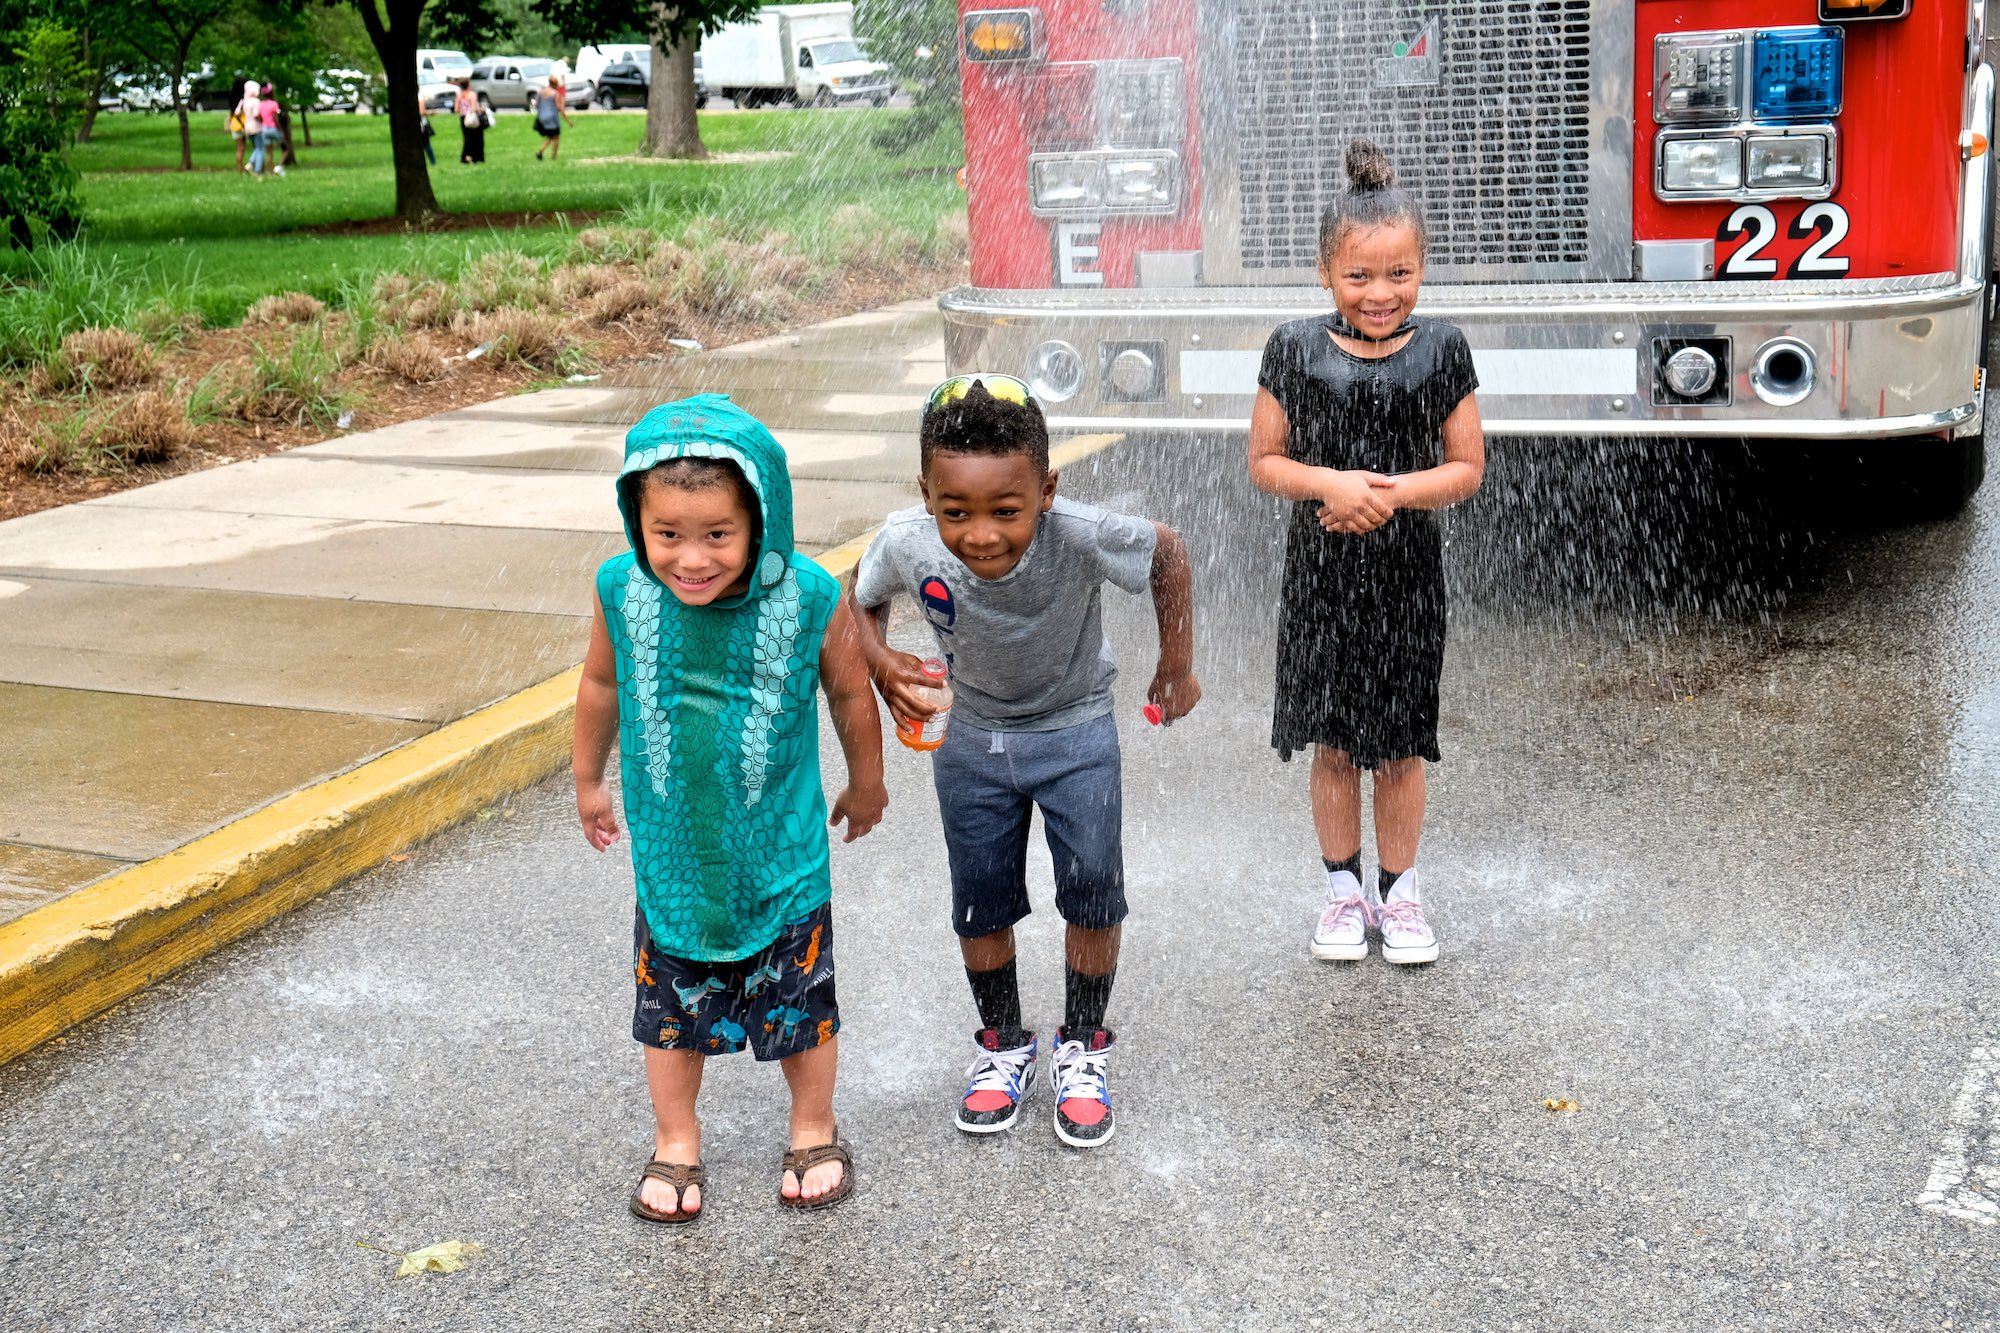 A water sprinkler on a hot day is the coolest thing ever! Click on the photo to see even more!